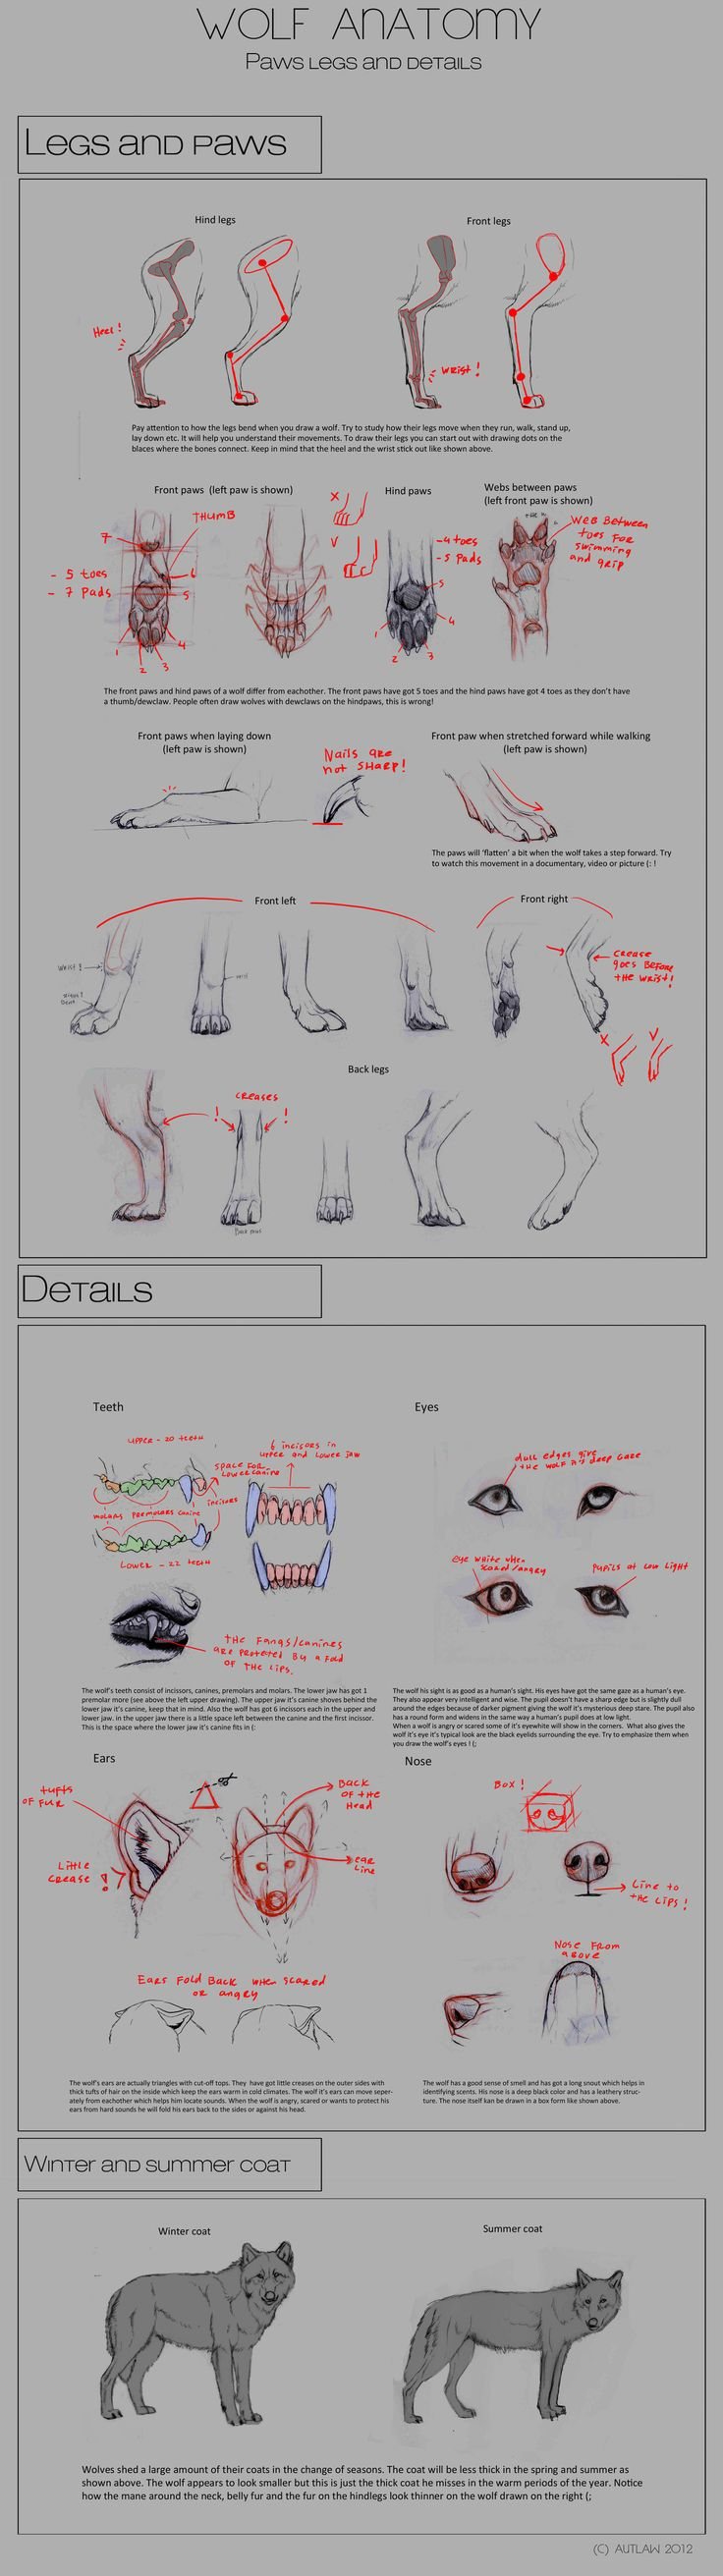 Wolf Anatomy - Part 4 by *Autlaw on deviantART || Find more at https://www.facebook.com/CharacterDesignReferences & http://www.pinterest.com/characterdesigh